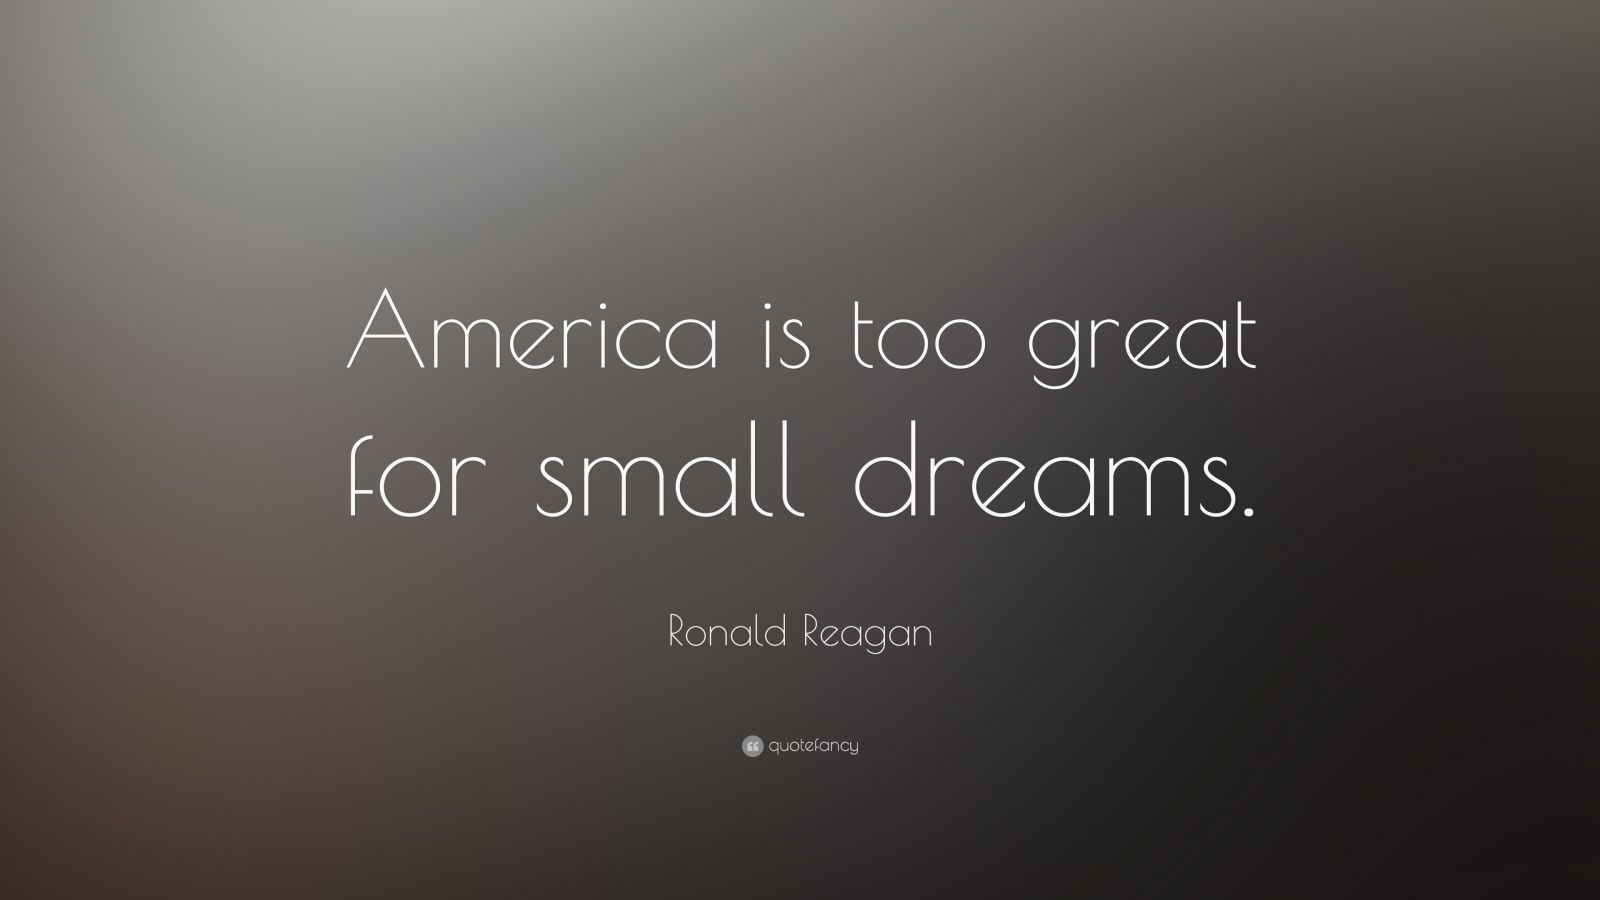 Inspiring Relationship Quotes Wallpaper Ronald Reagan Quote America Is Too Great For Small